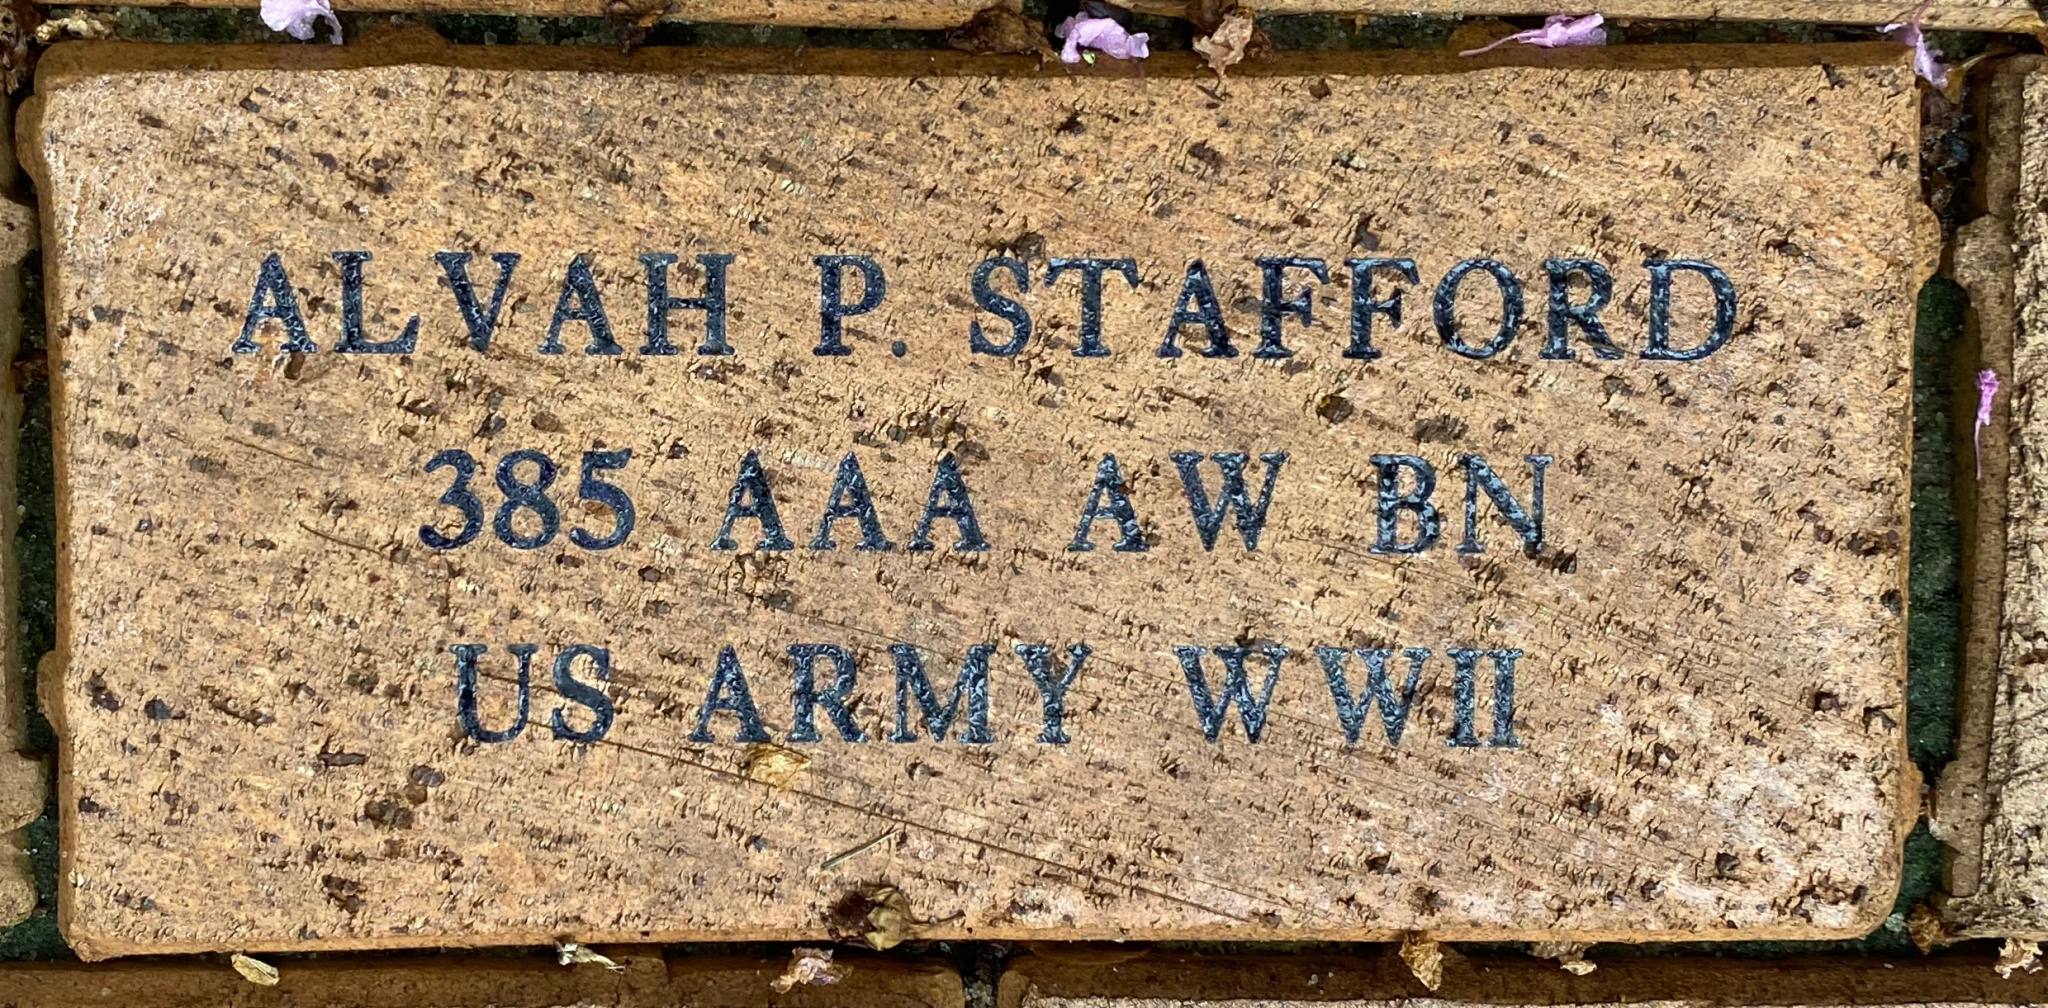 ALVAH P. STAFFORD 385 AAA AW BN US ARMY WWII